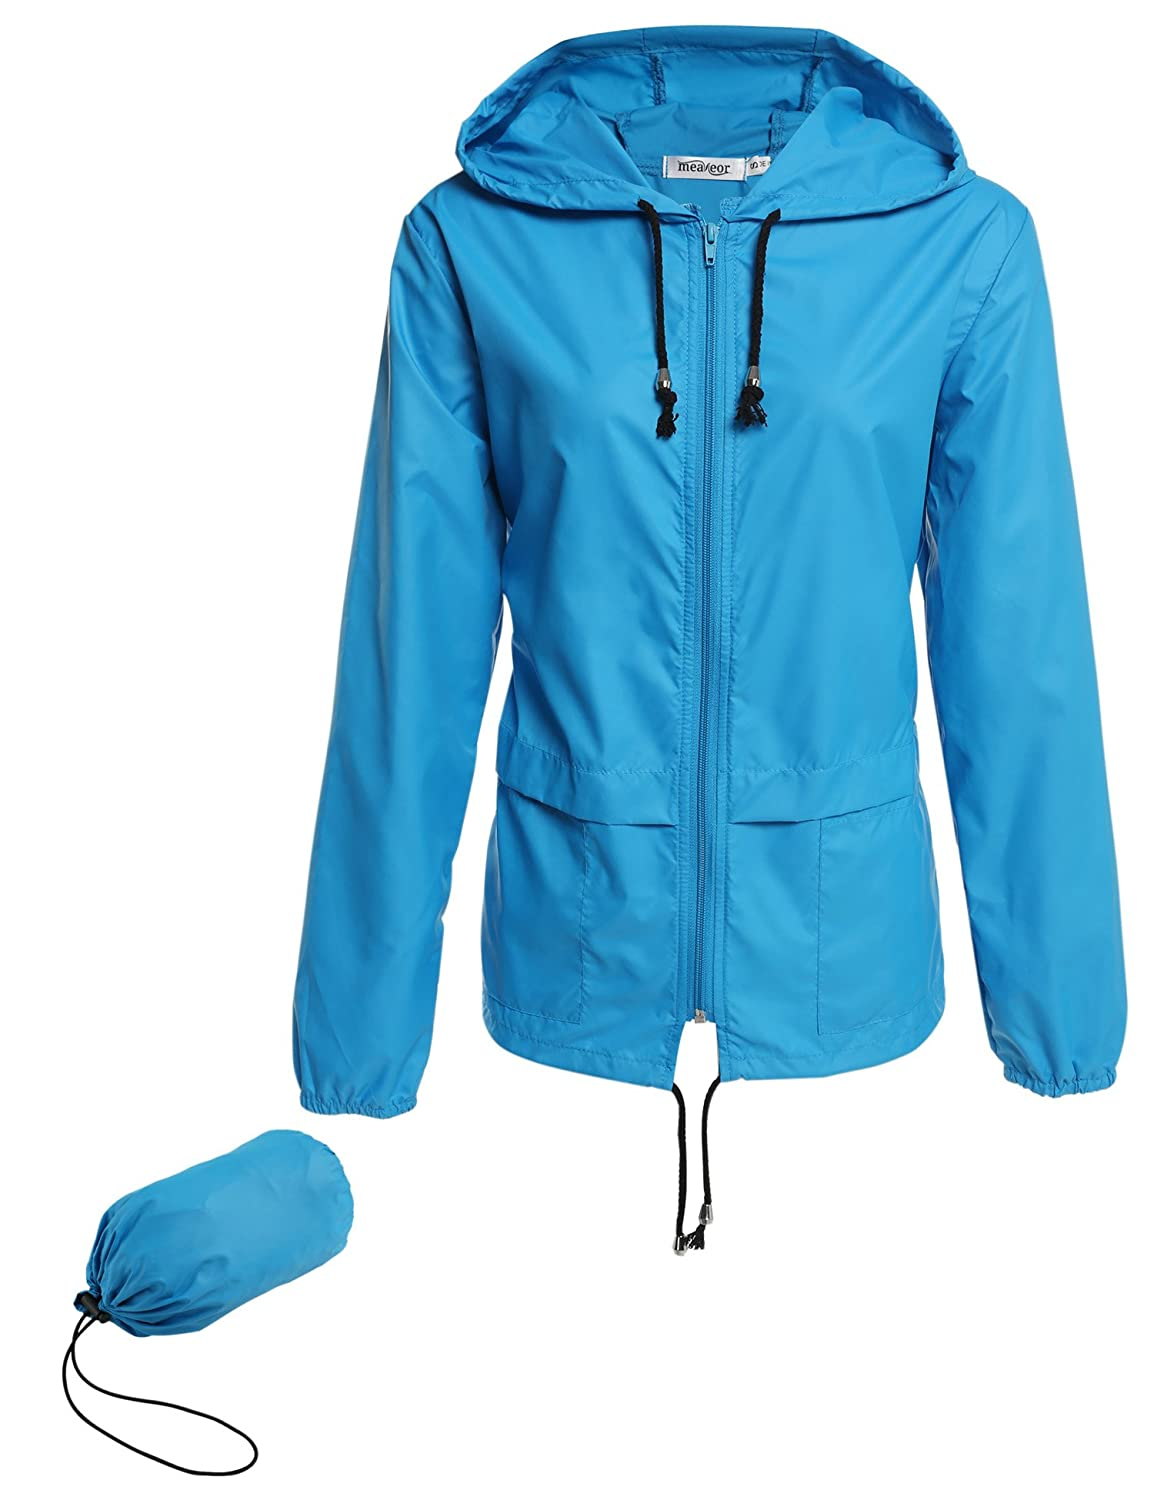 Meaneor Womens Rainwear Active Outdoor Hooded Cycling Packable and Lightweight Jacket AMH005320